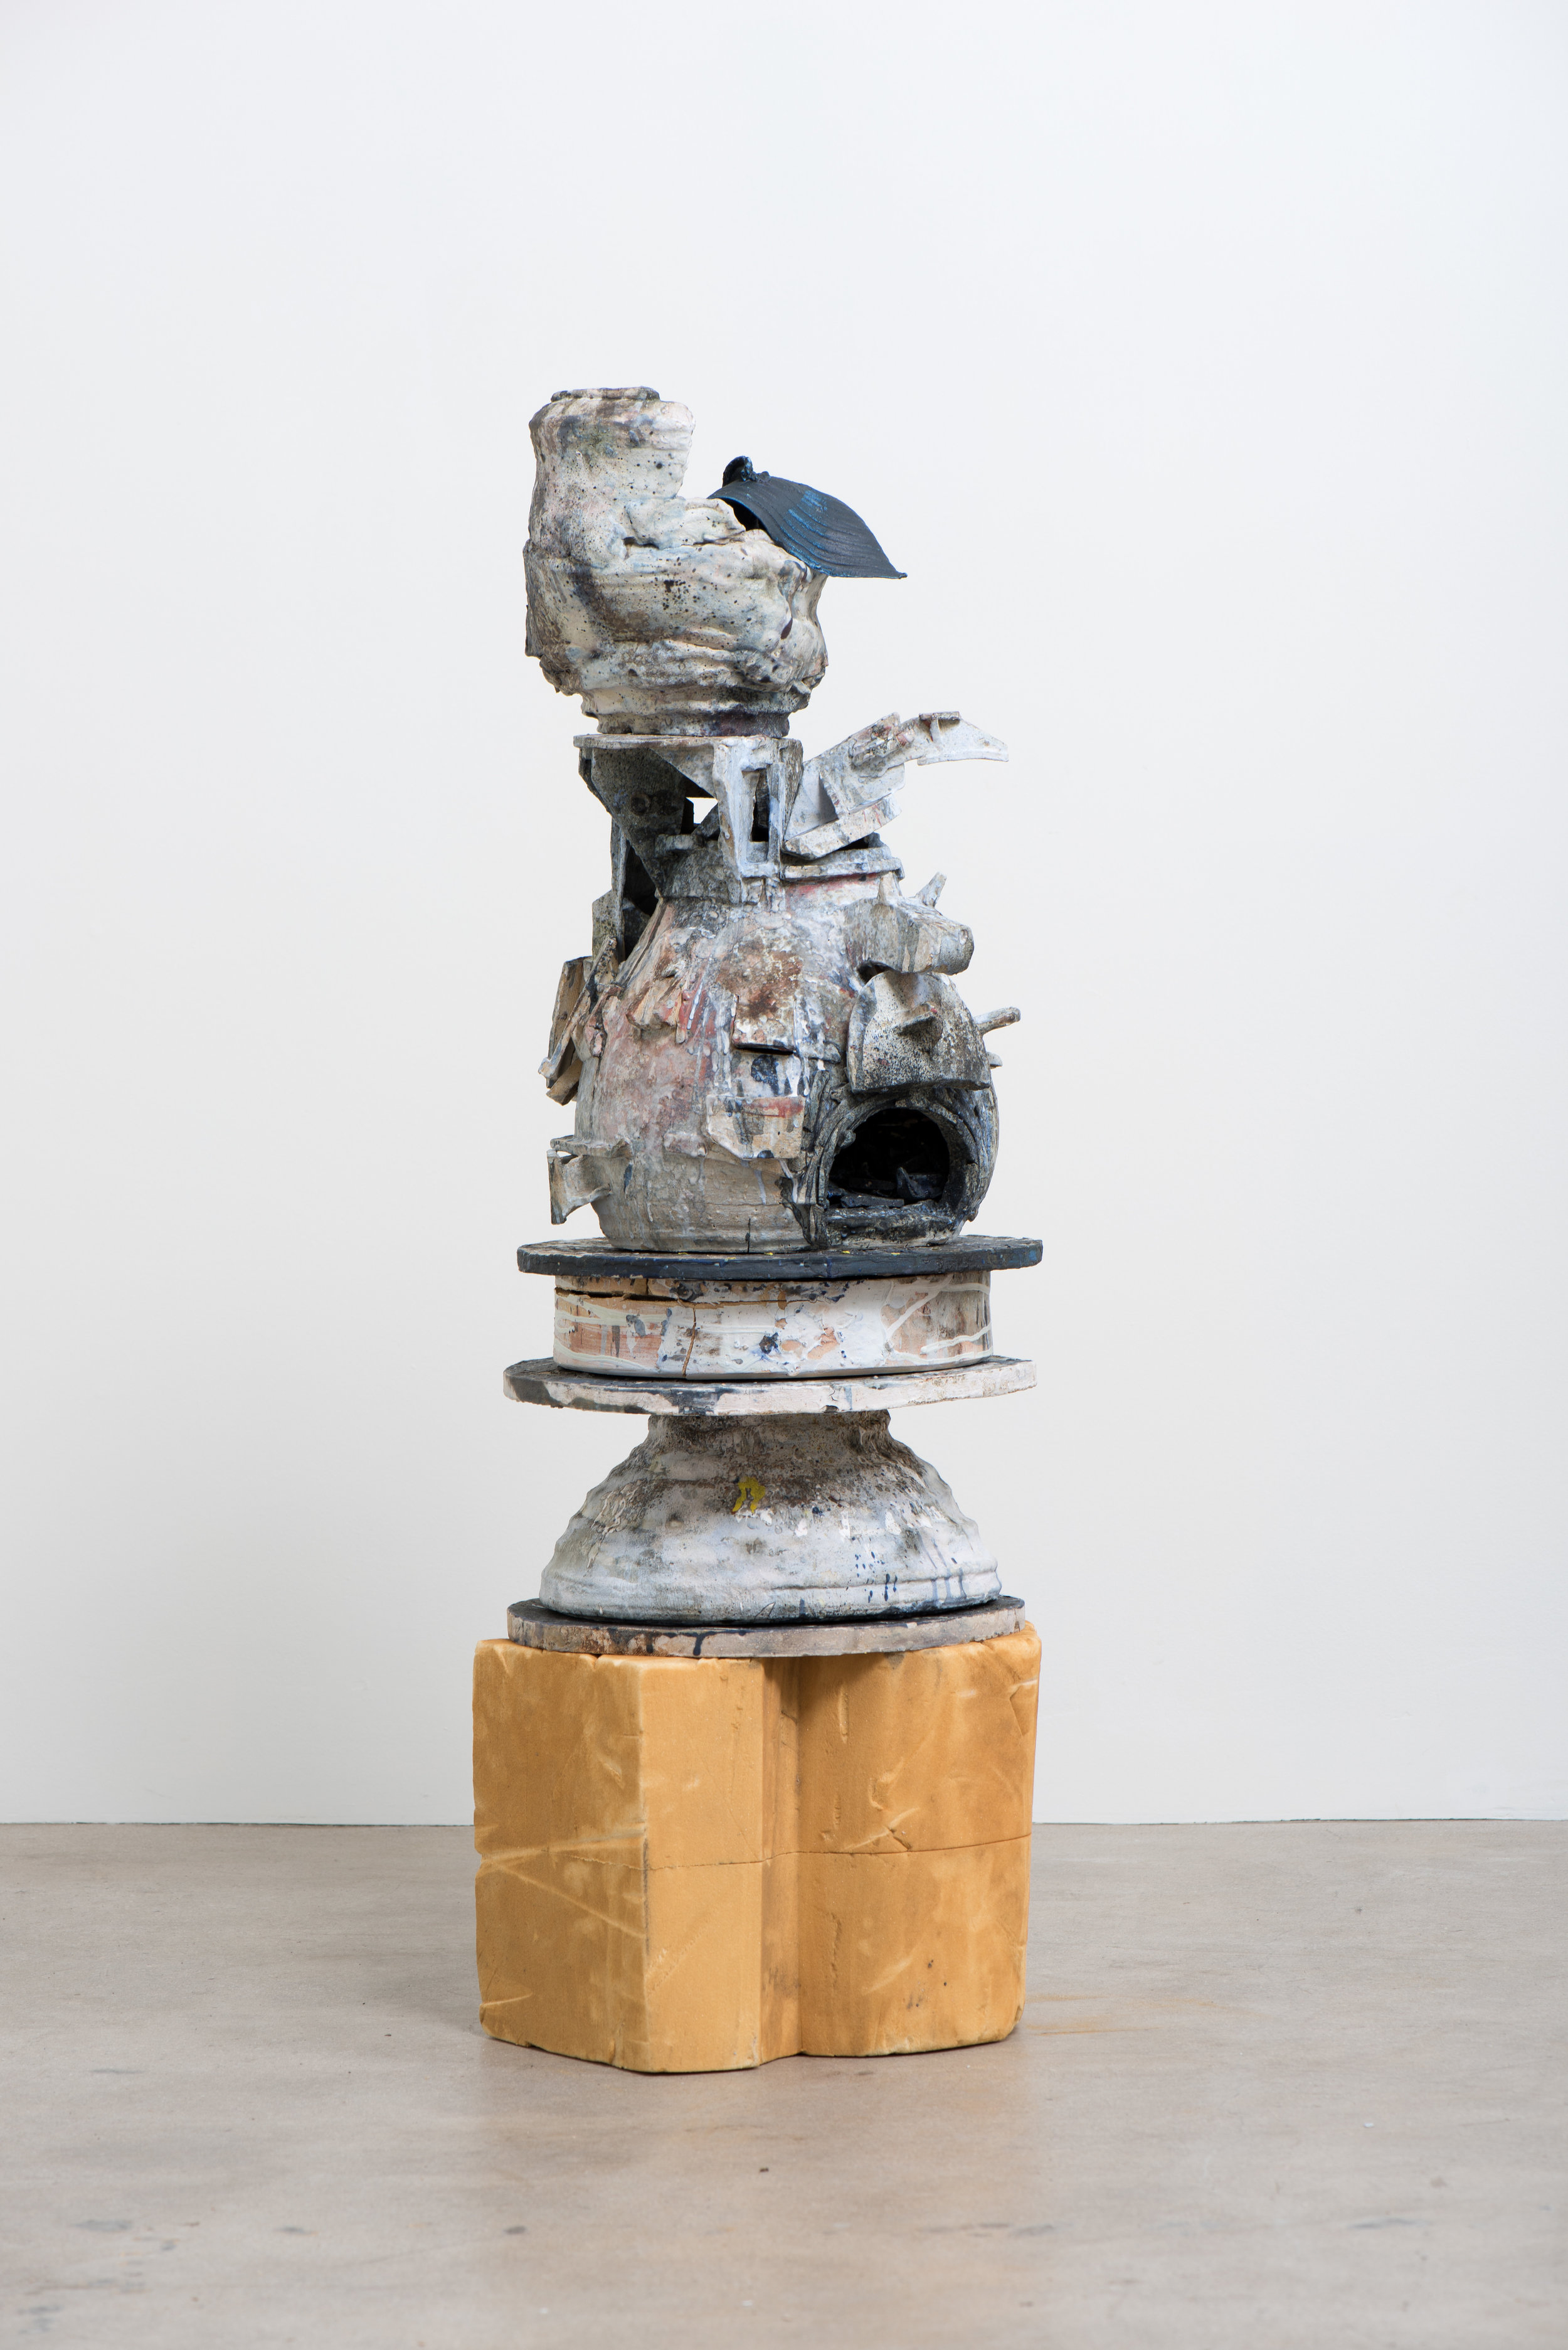 Chris Miller  The Kiln , 2019 Stoneware and fired materials 49 1/2 x 16 x 16 inches